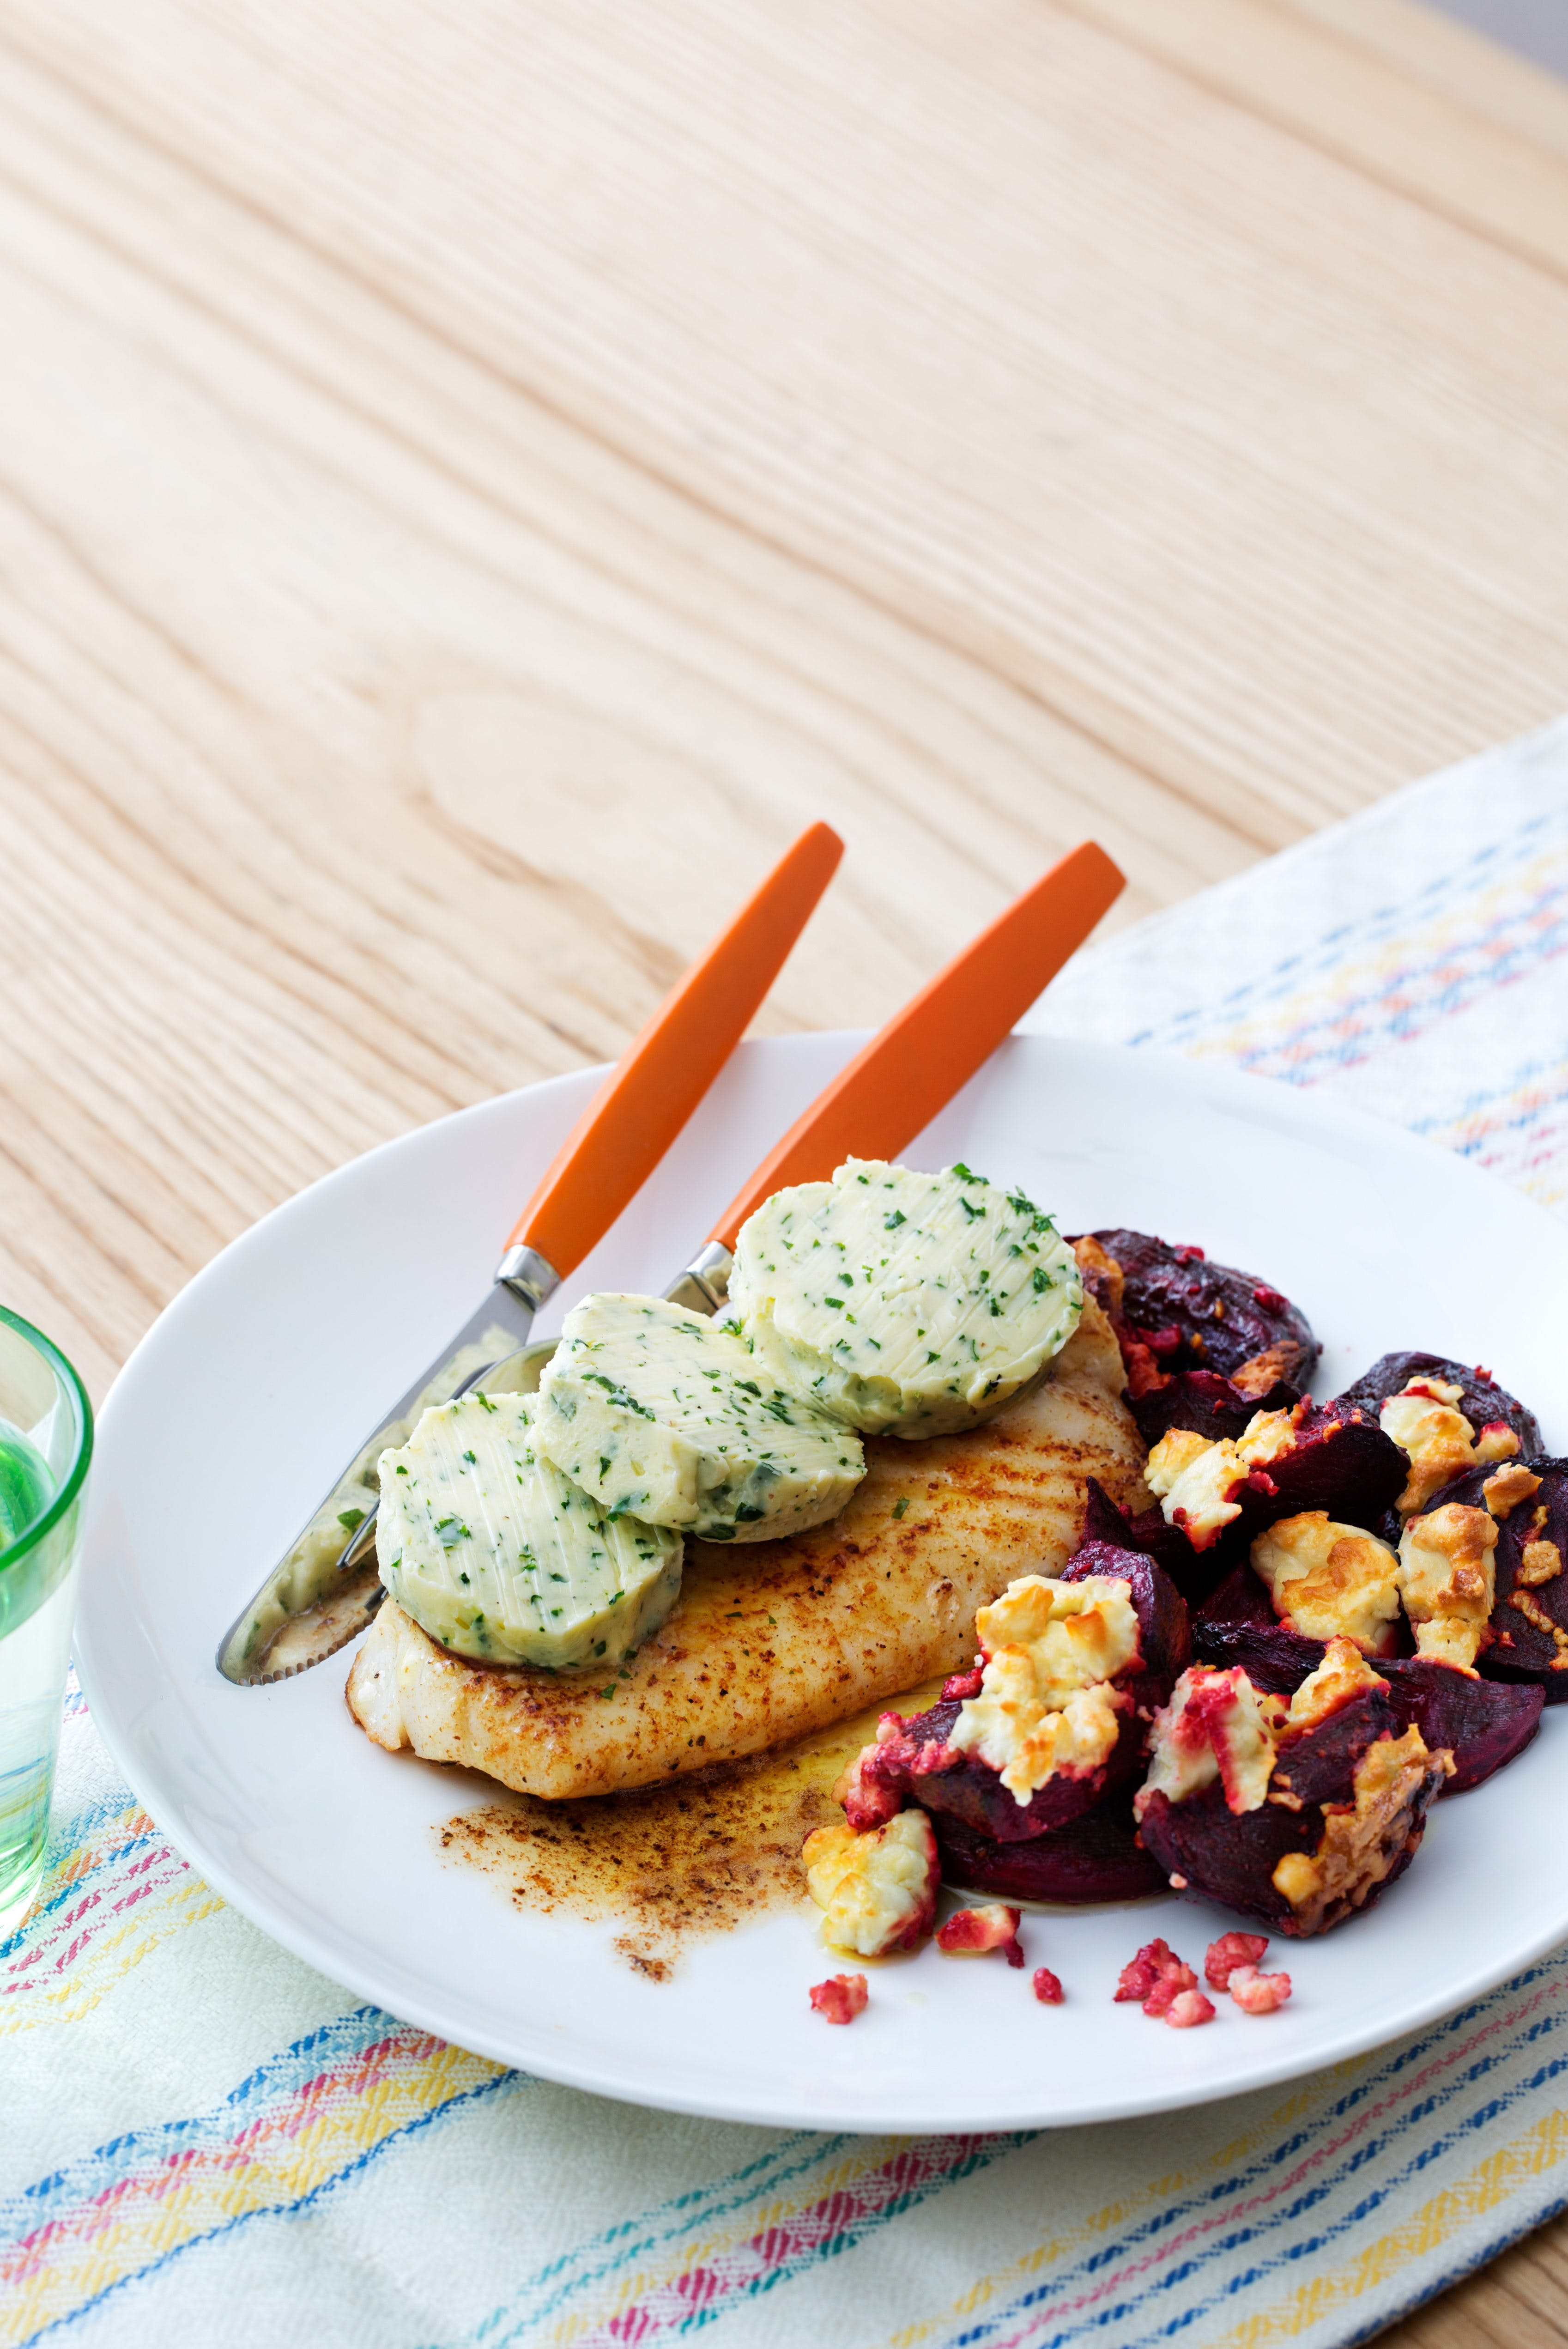 Keto fish with oven-baked beets